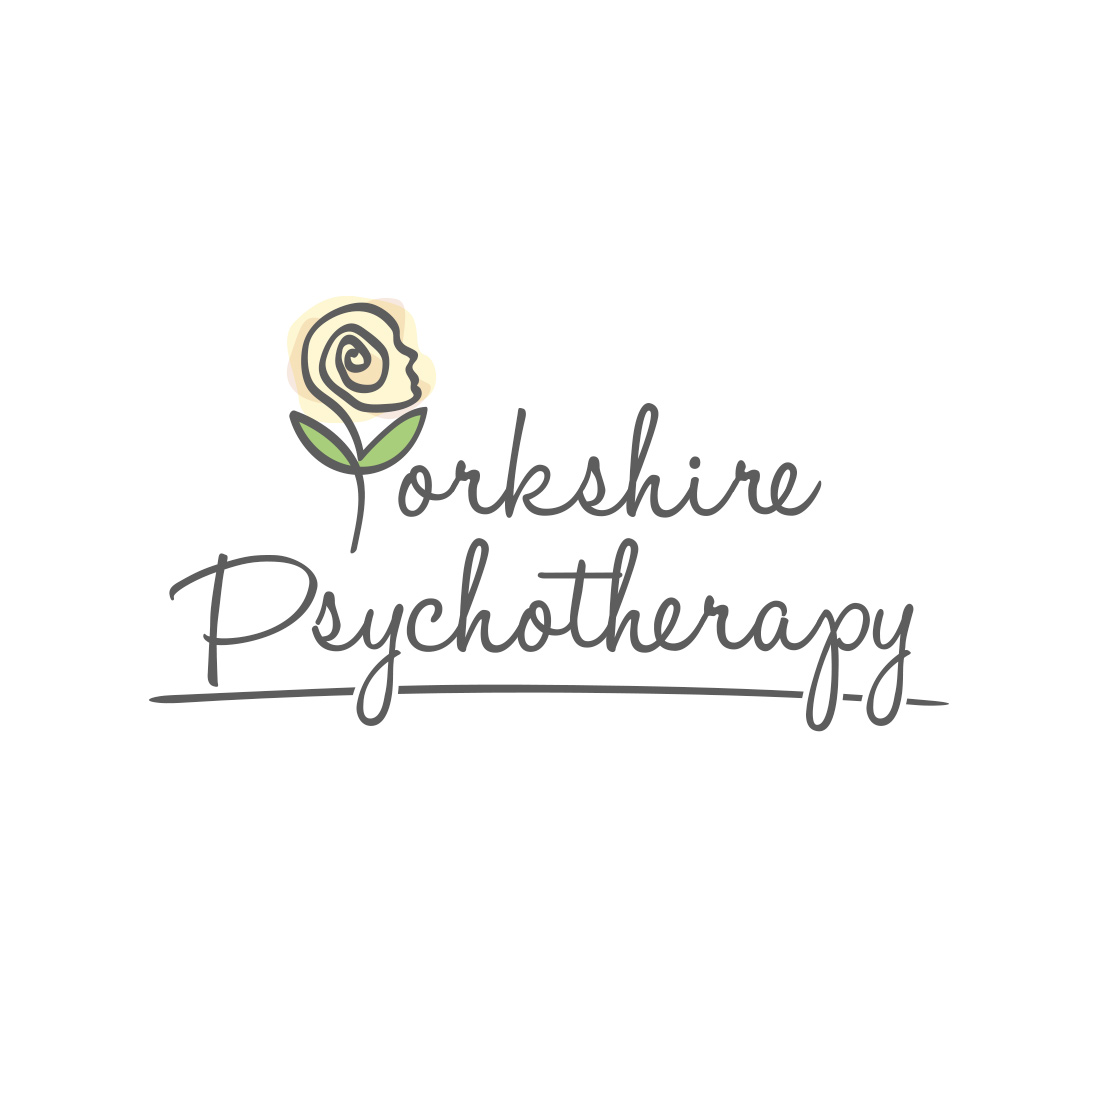 Yorkshire Psychotherapy Elbowroom Graphics